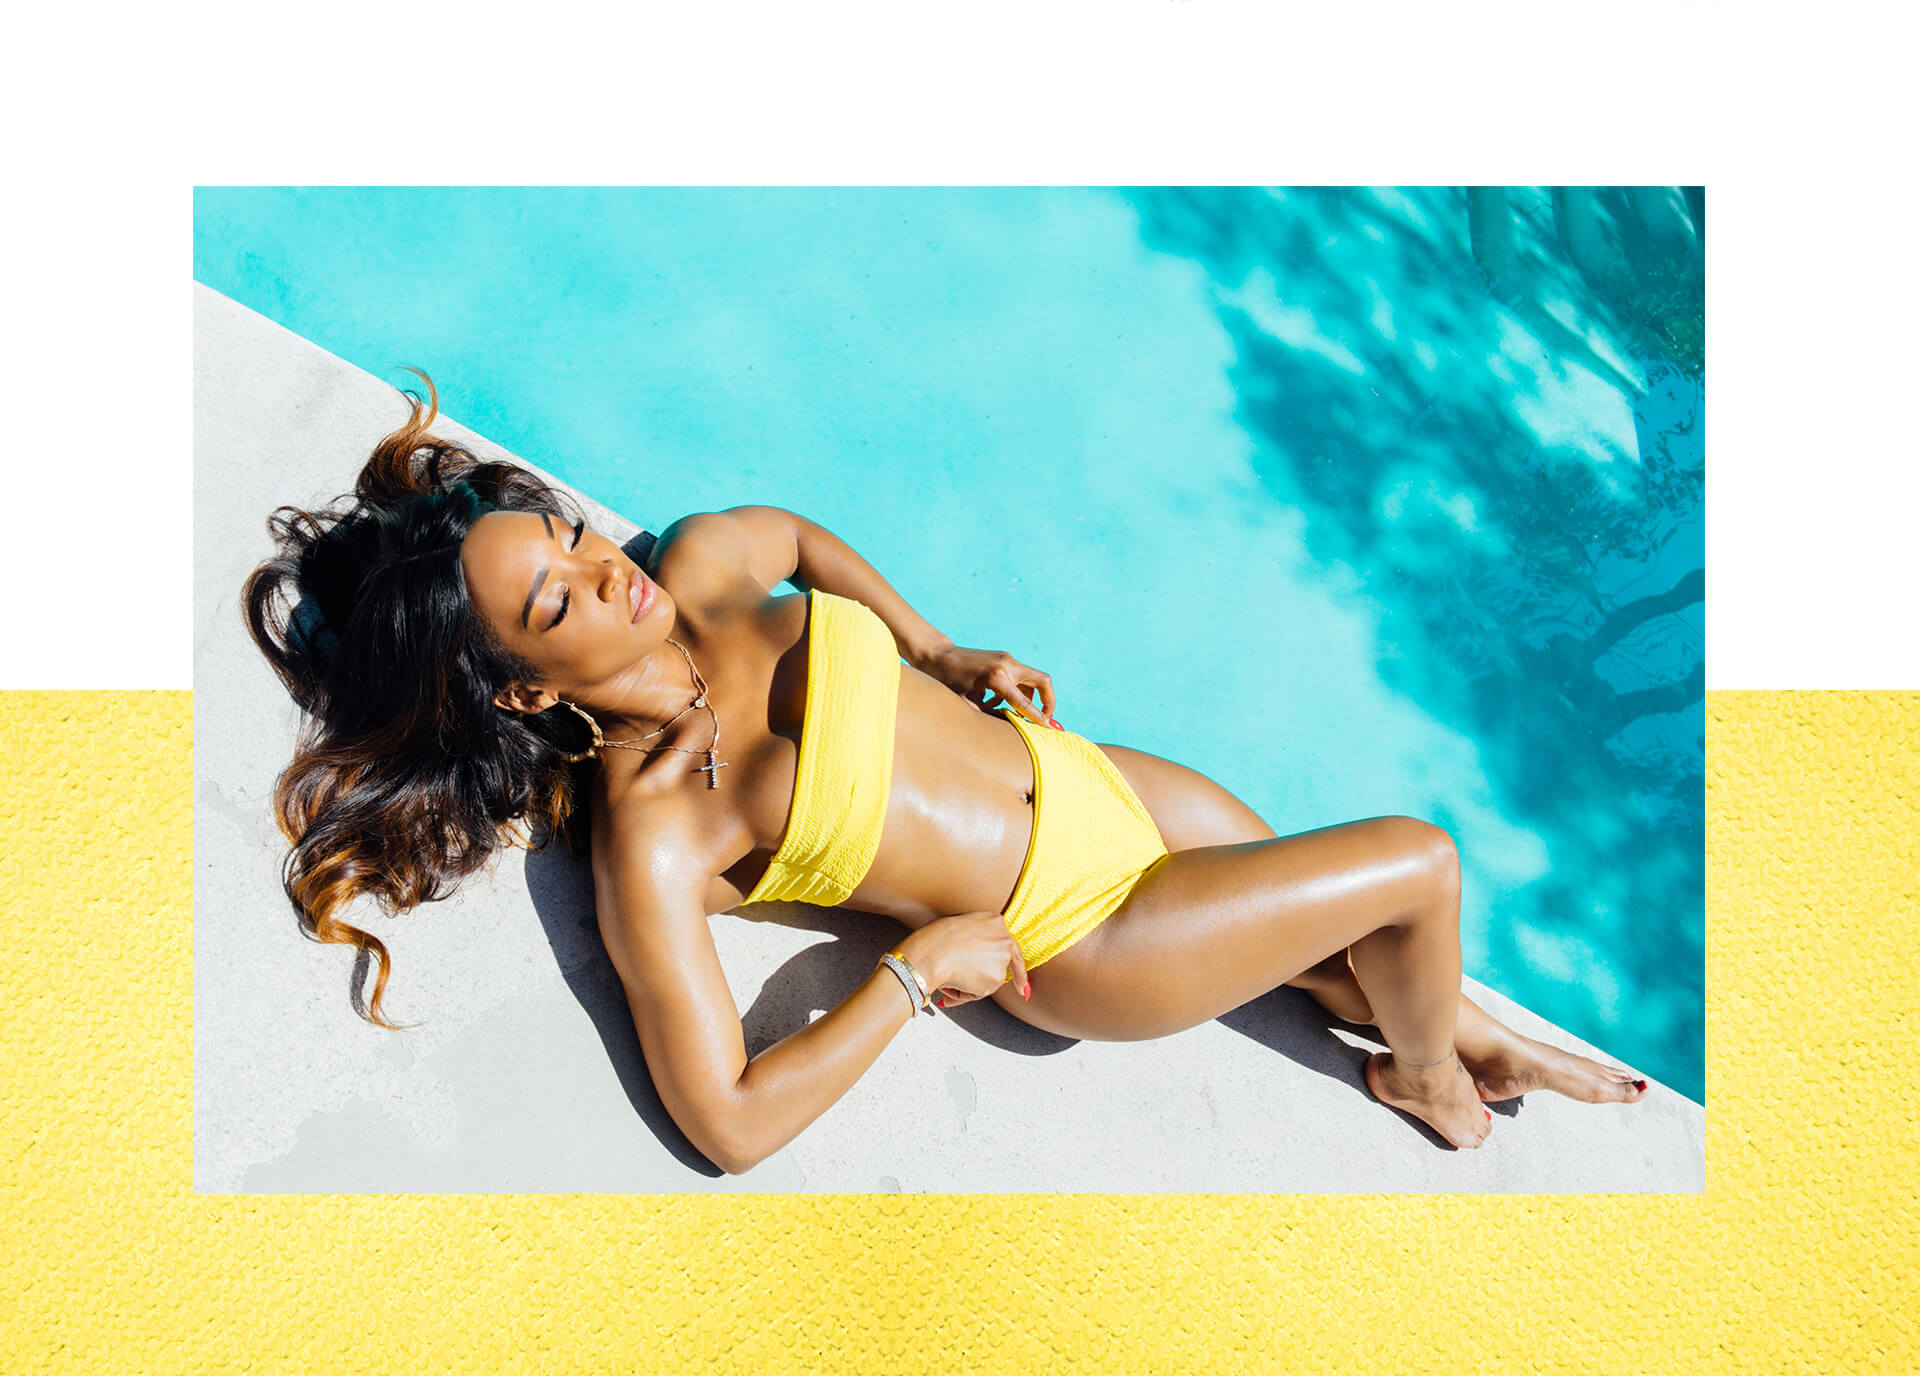 Malika haqq swimwear lookbook shoot 4 desktop